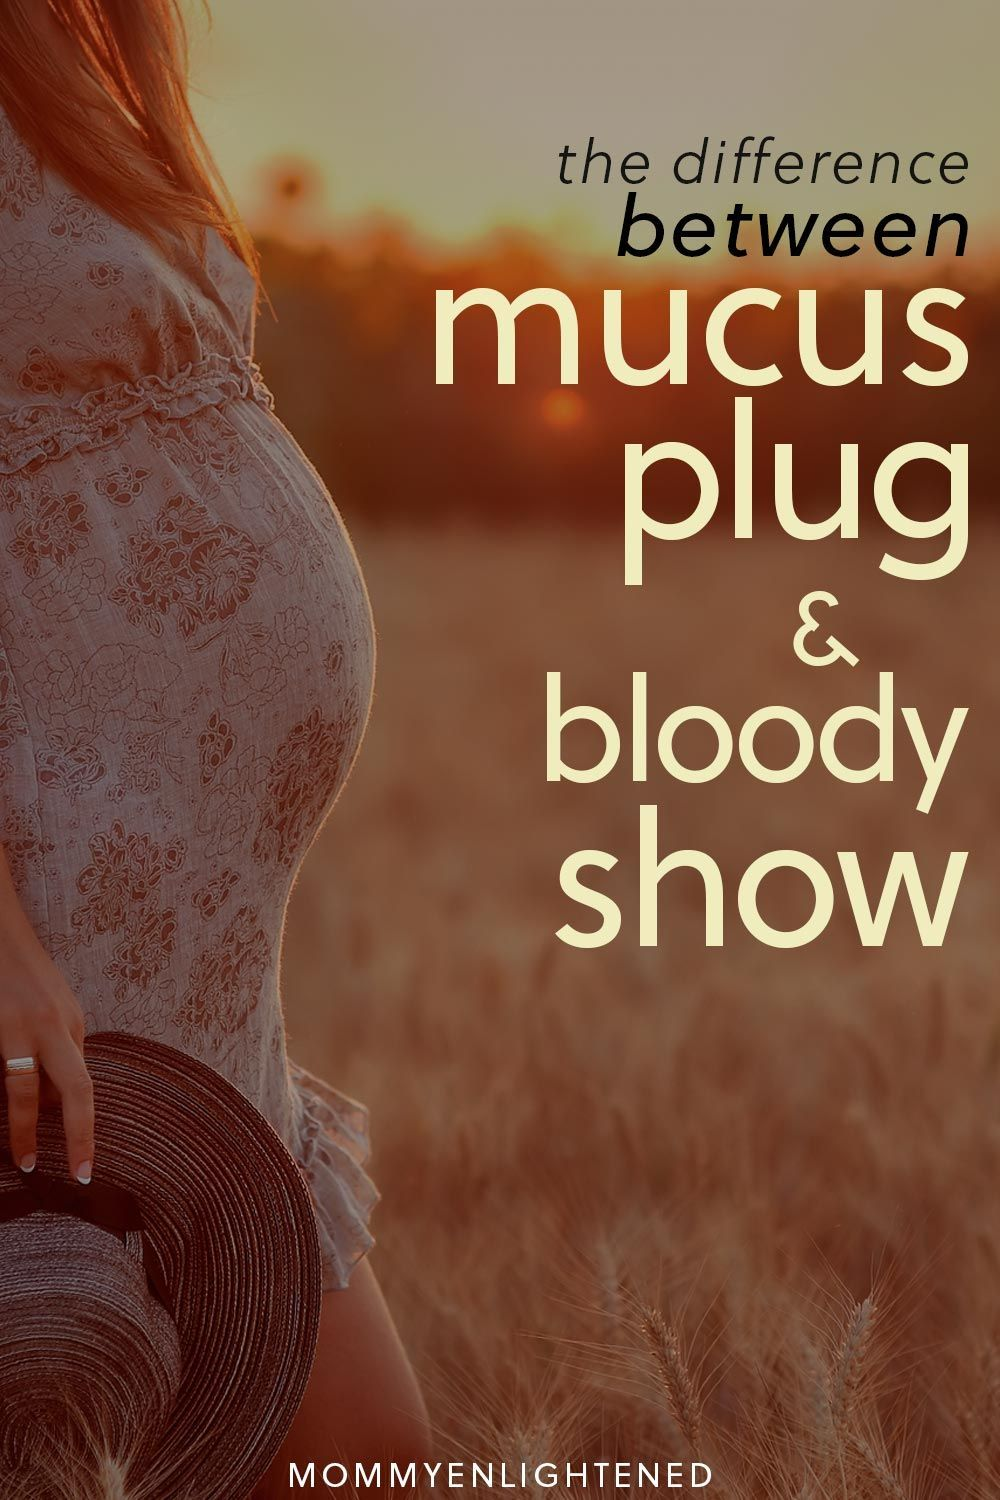 What's the Difference Between Bloody Show & Mucus Plug